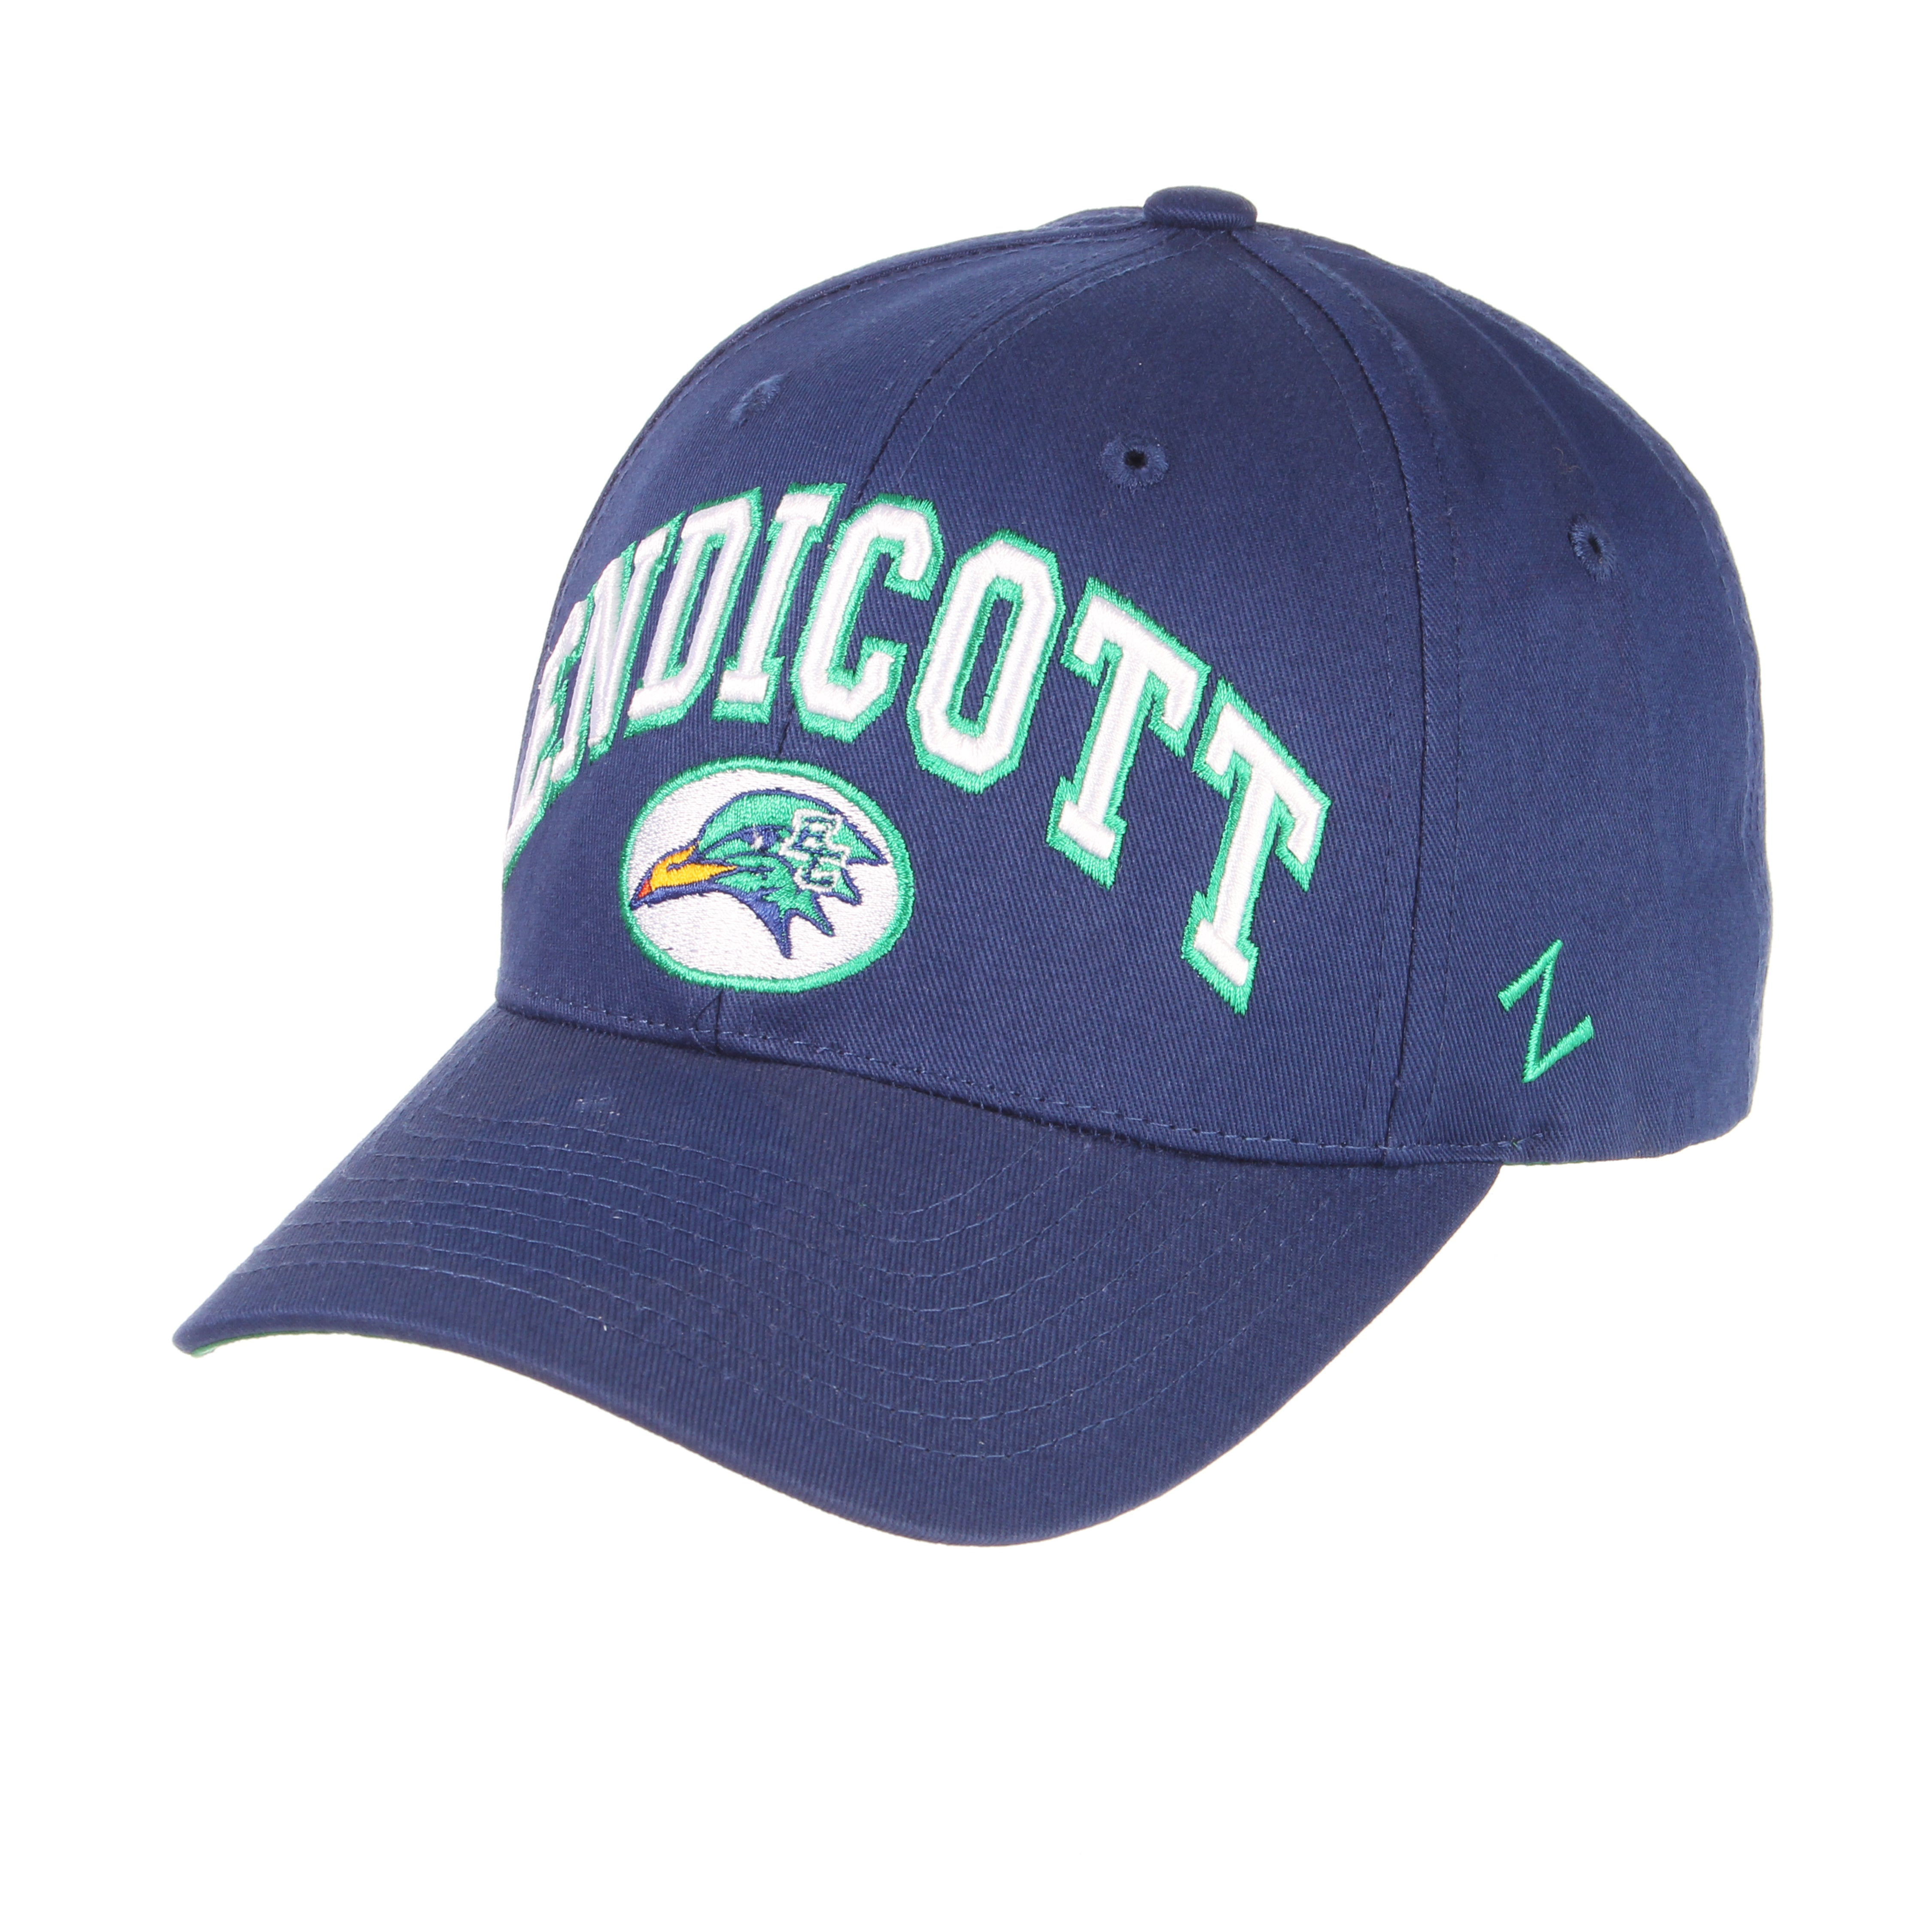 Endicott College Sport Standard (Low) (ENDICOTT/SEAGULL) Royal Dark 100% Cotton Twill Adjustable hats by Zephyr